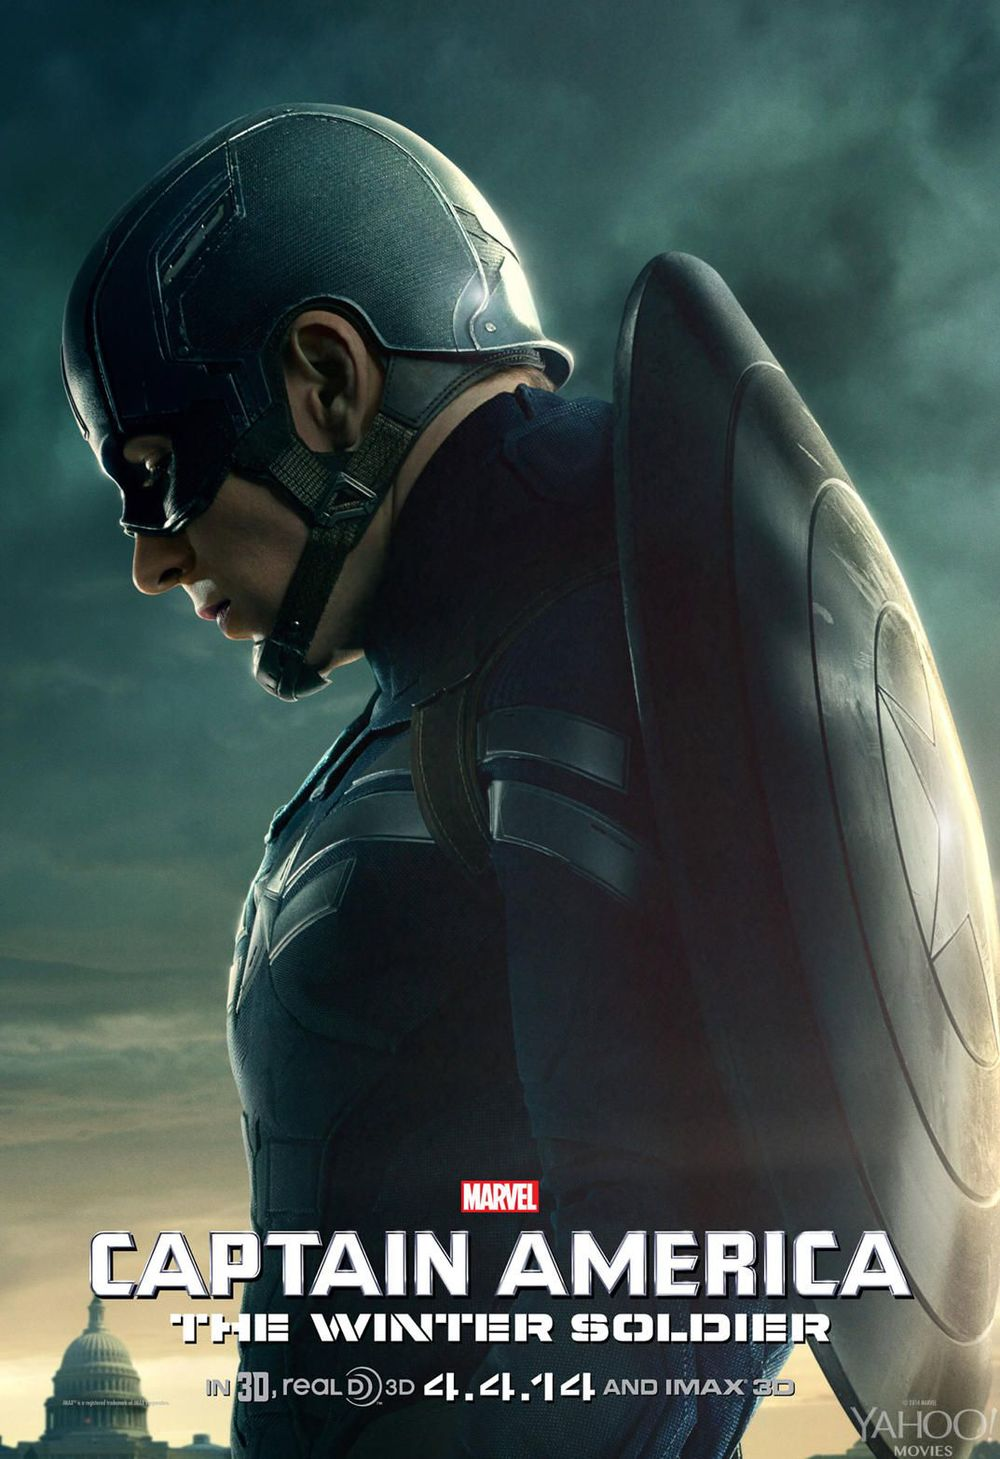 captain america the winter soldier 3 character posters and photos geektyrant. Black Bedroom Furniture Sets. Home Design Ideas